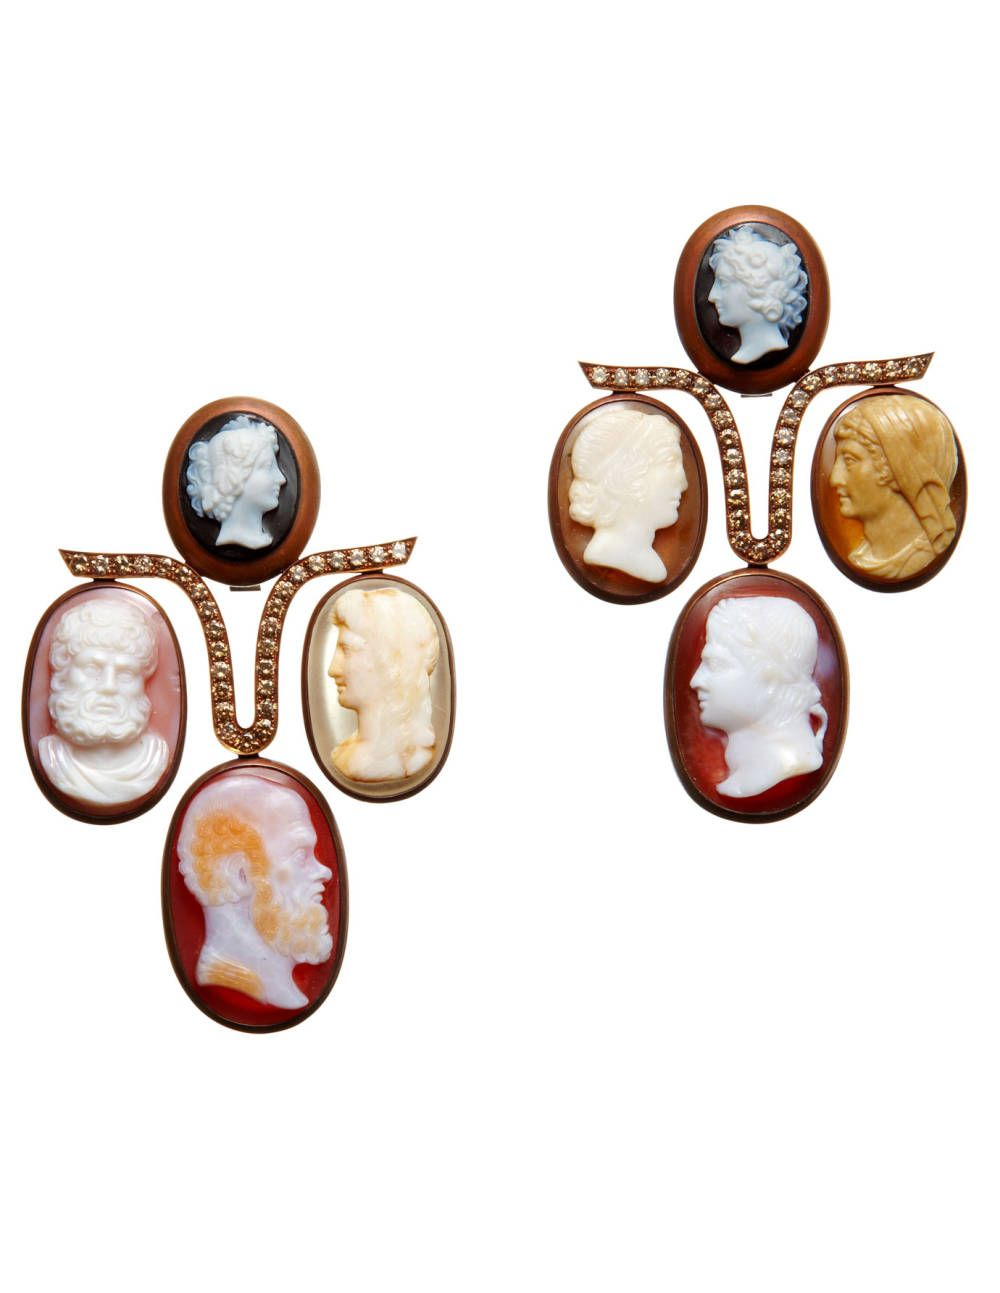 Chic Jewelry and Accessories Spring 2012 - Fine Jewelry and Accessory Brands - Town & Country Magazine